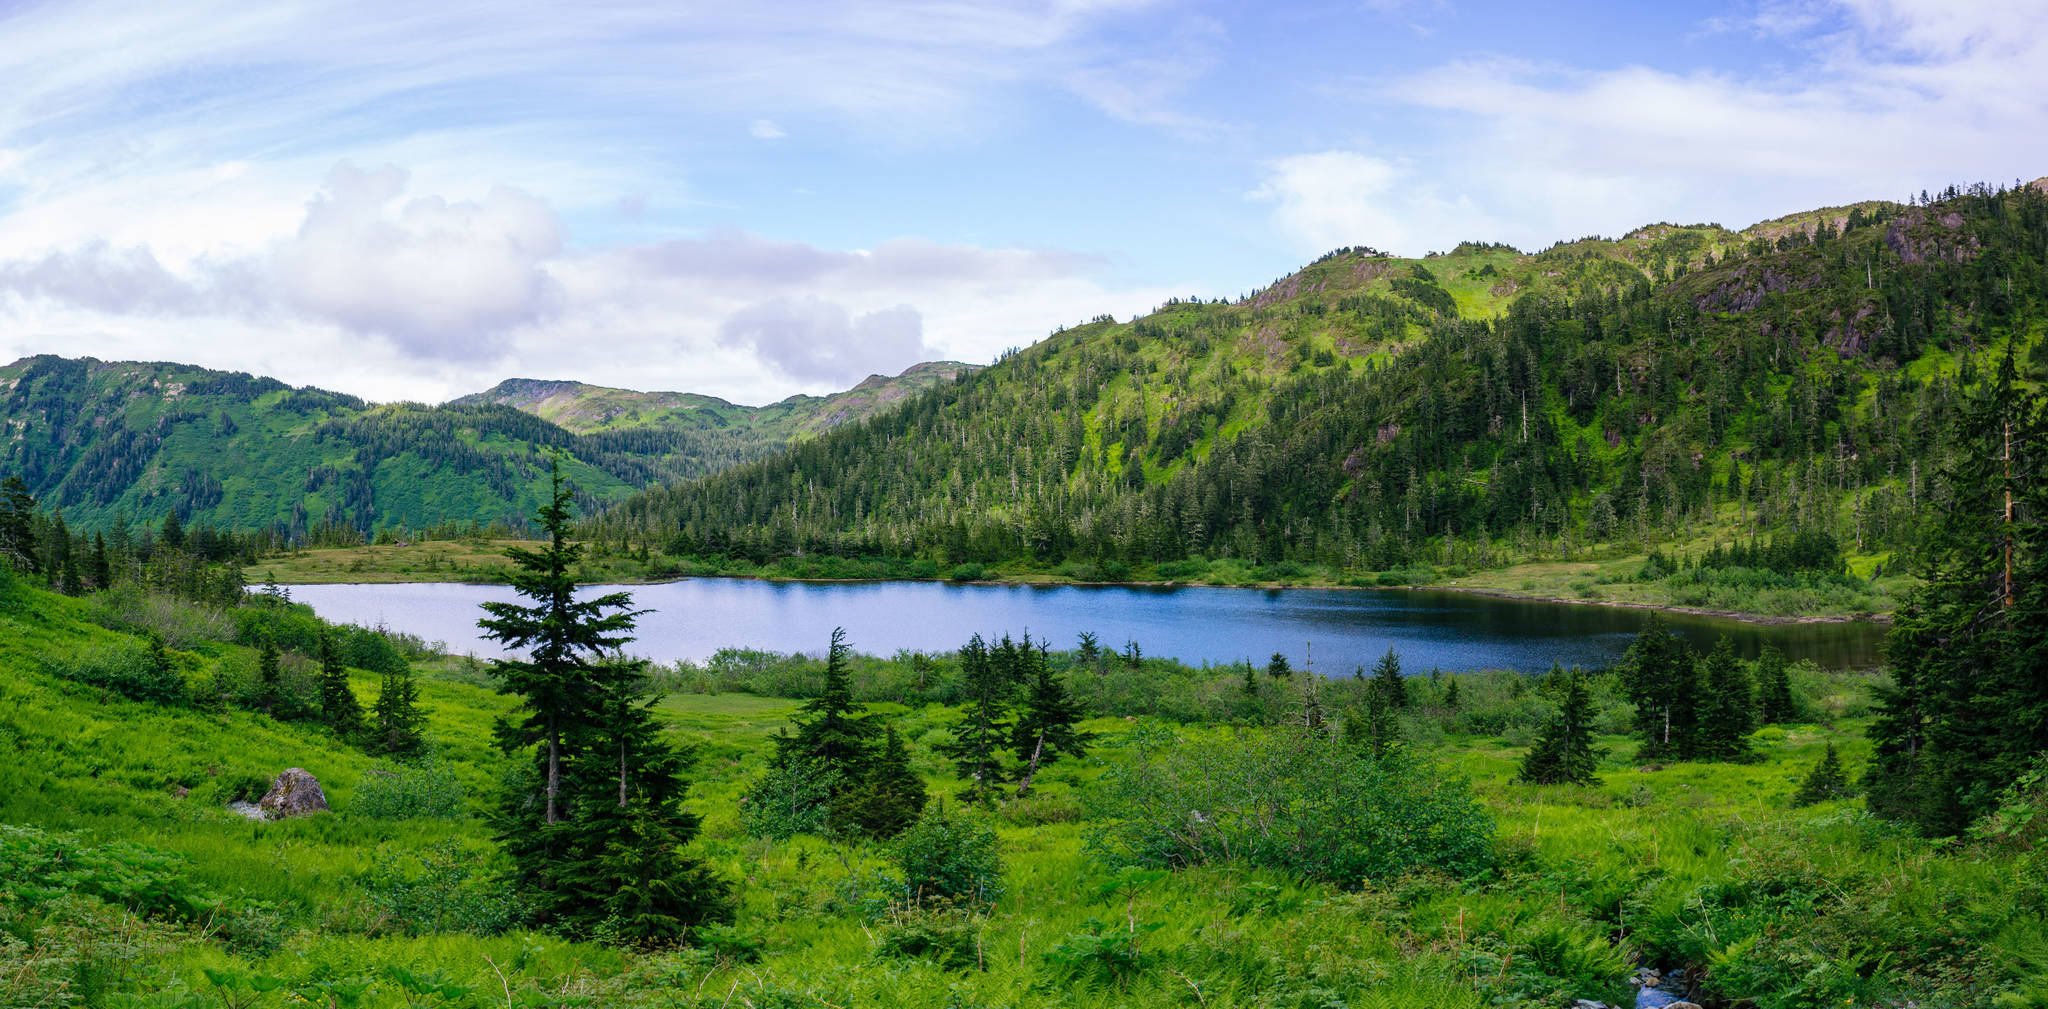 A view of Cropley Lake, from one of the streams feeding into it, on Sunday, June 24, 2018. (Gabe Donohoe   For the Juneau Empire)